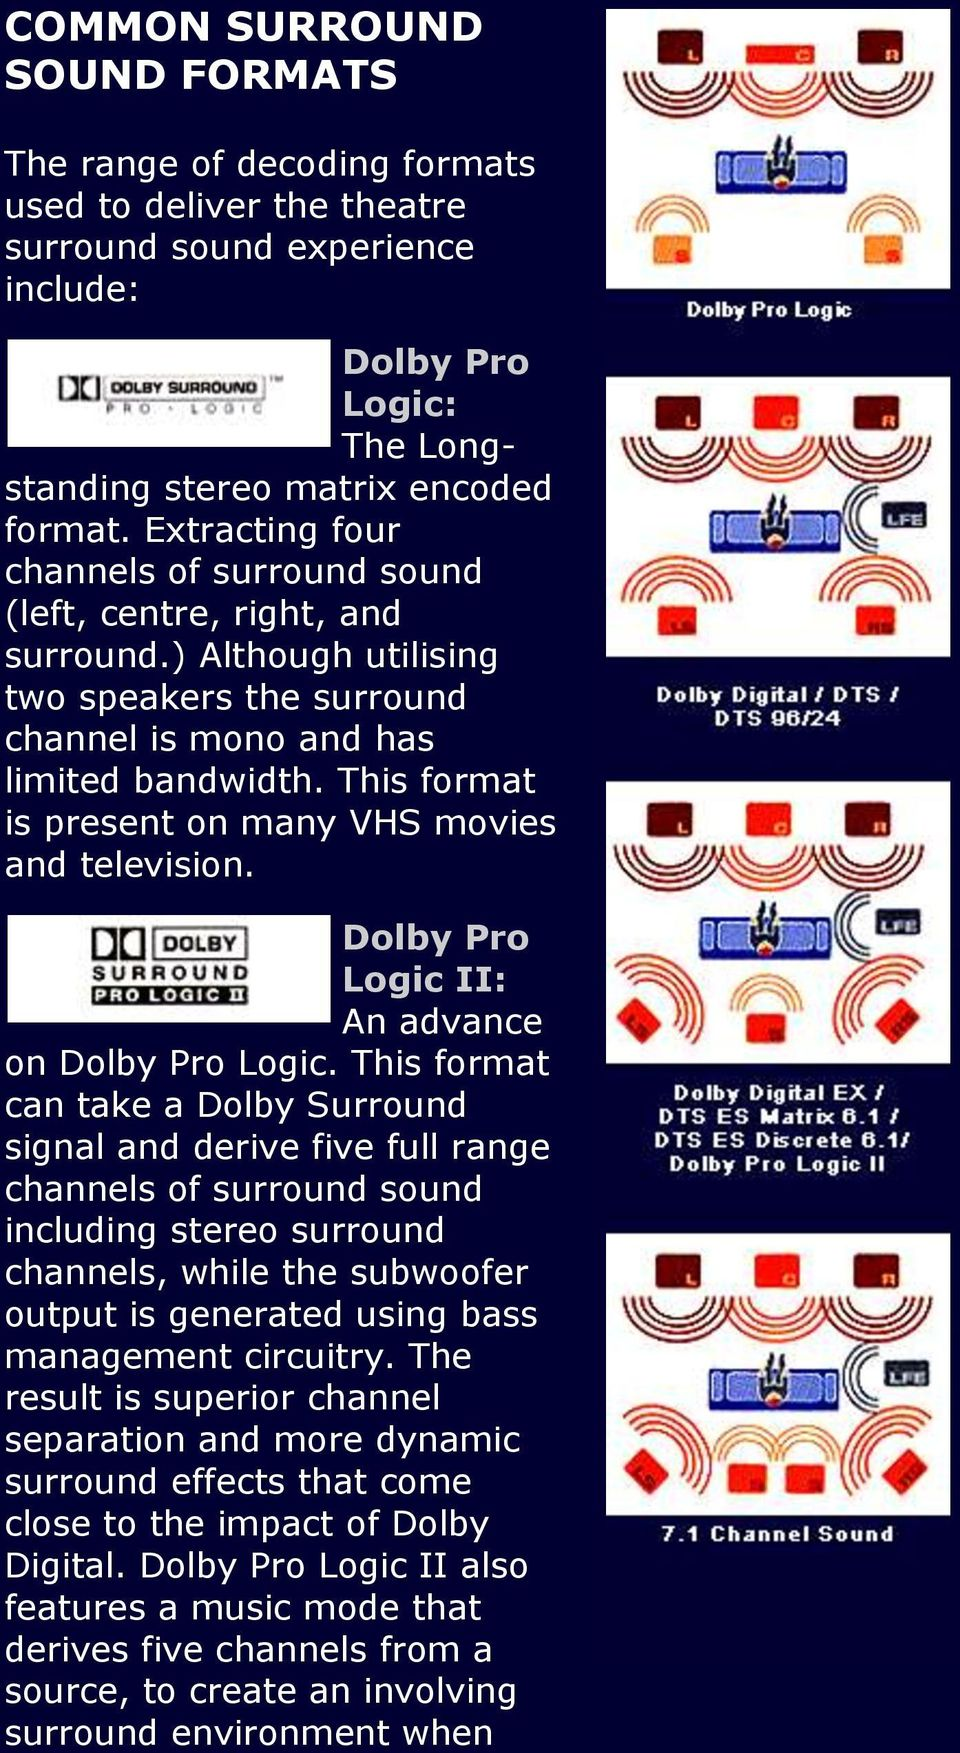 This format is present on many VHS movies and television. Dolby Pro Logic II: An advance on Dolby Pro Logic.